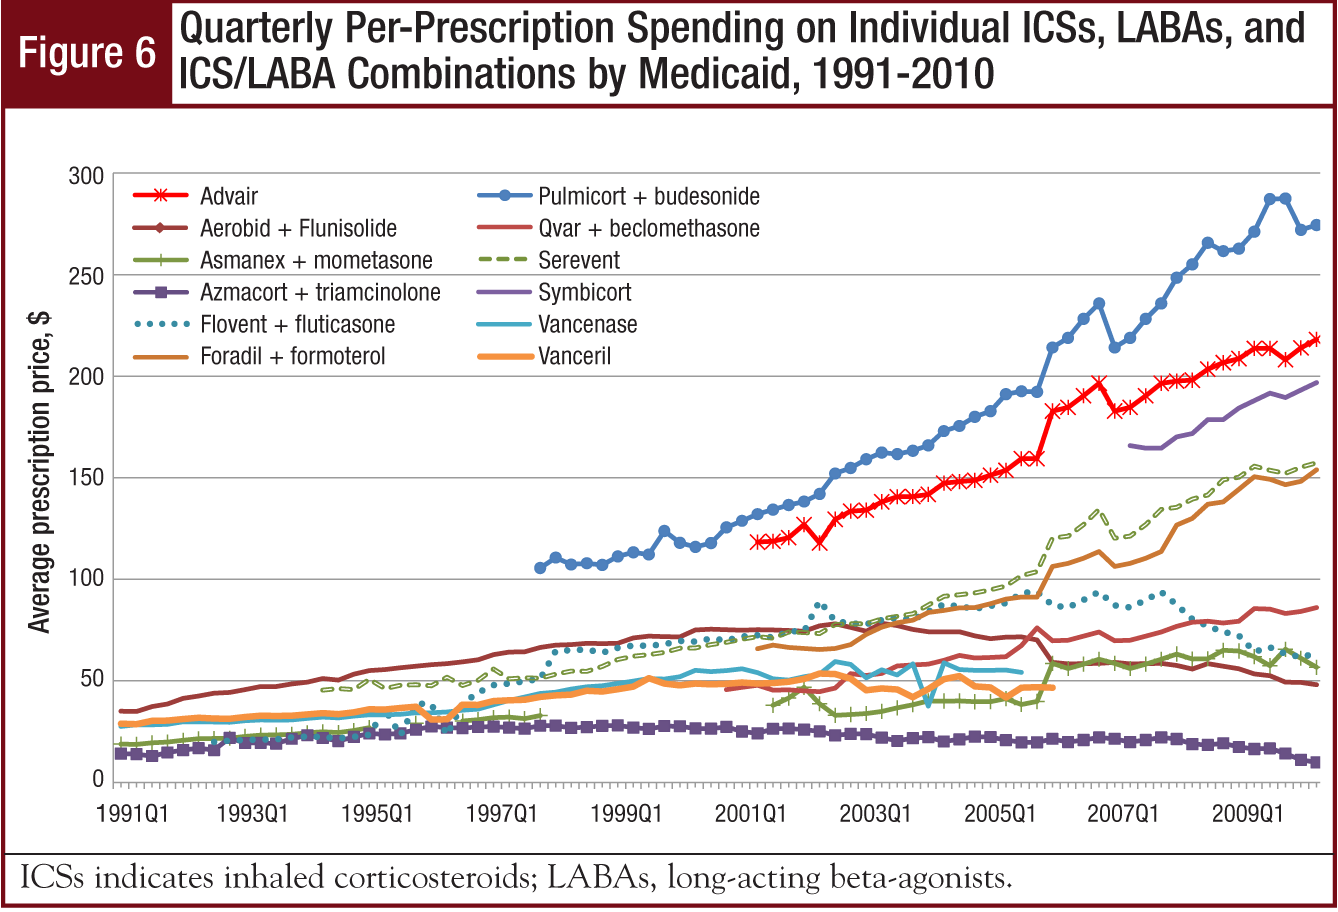 Figure 6 - Quarterly Per-Prescription Spending on Individual ICSs, LABAs, and ICS/LABA Combinations by Medicaid, 1991-2010